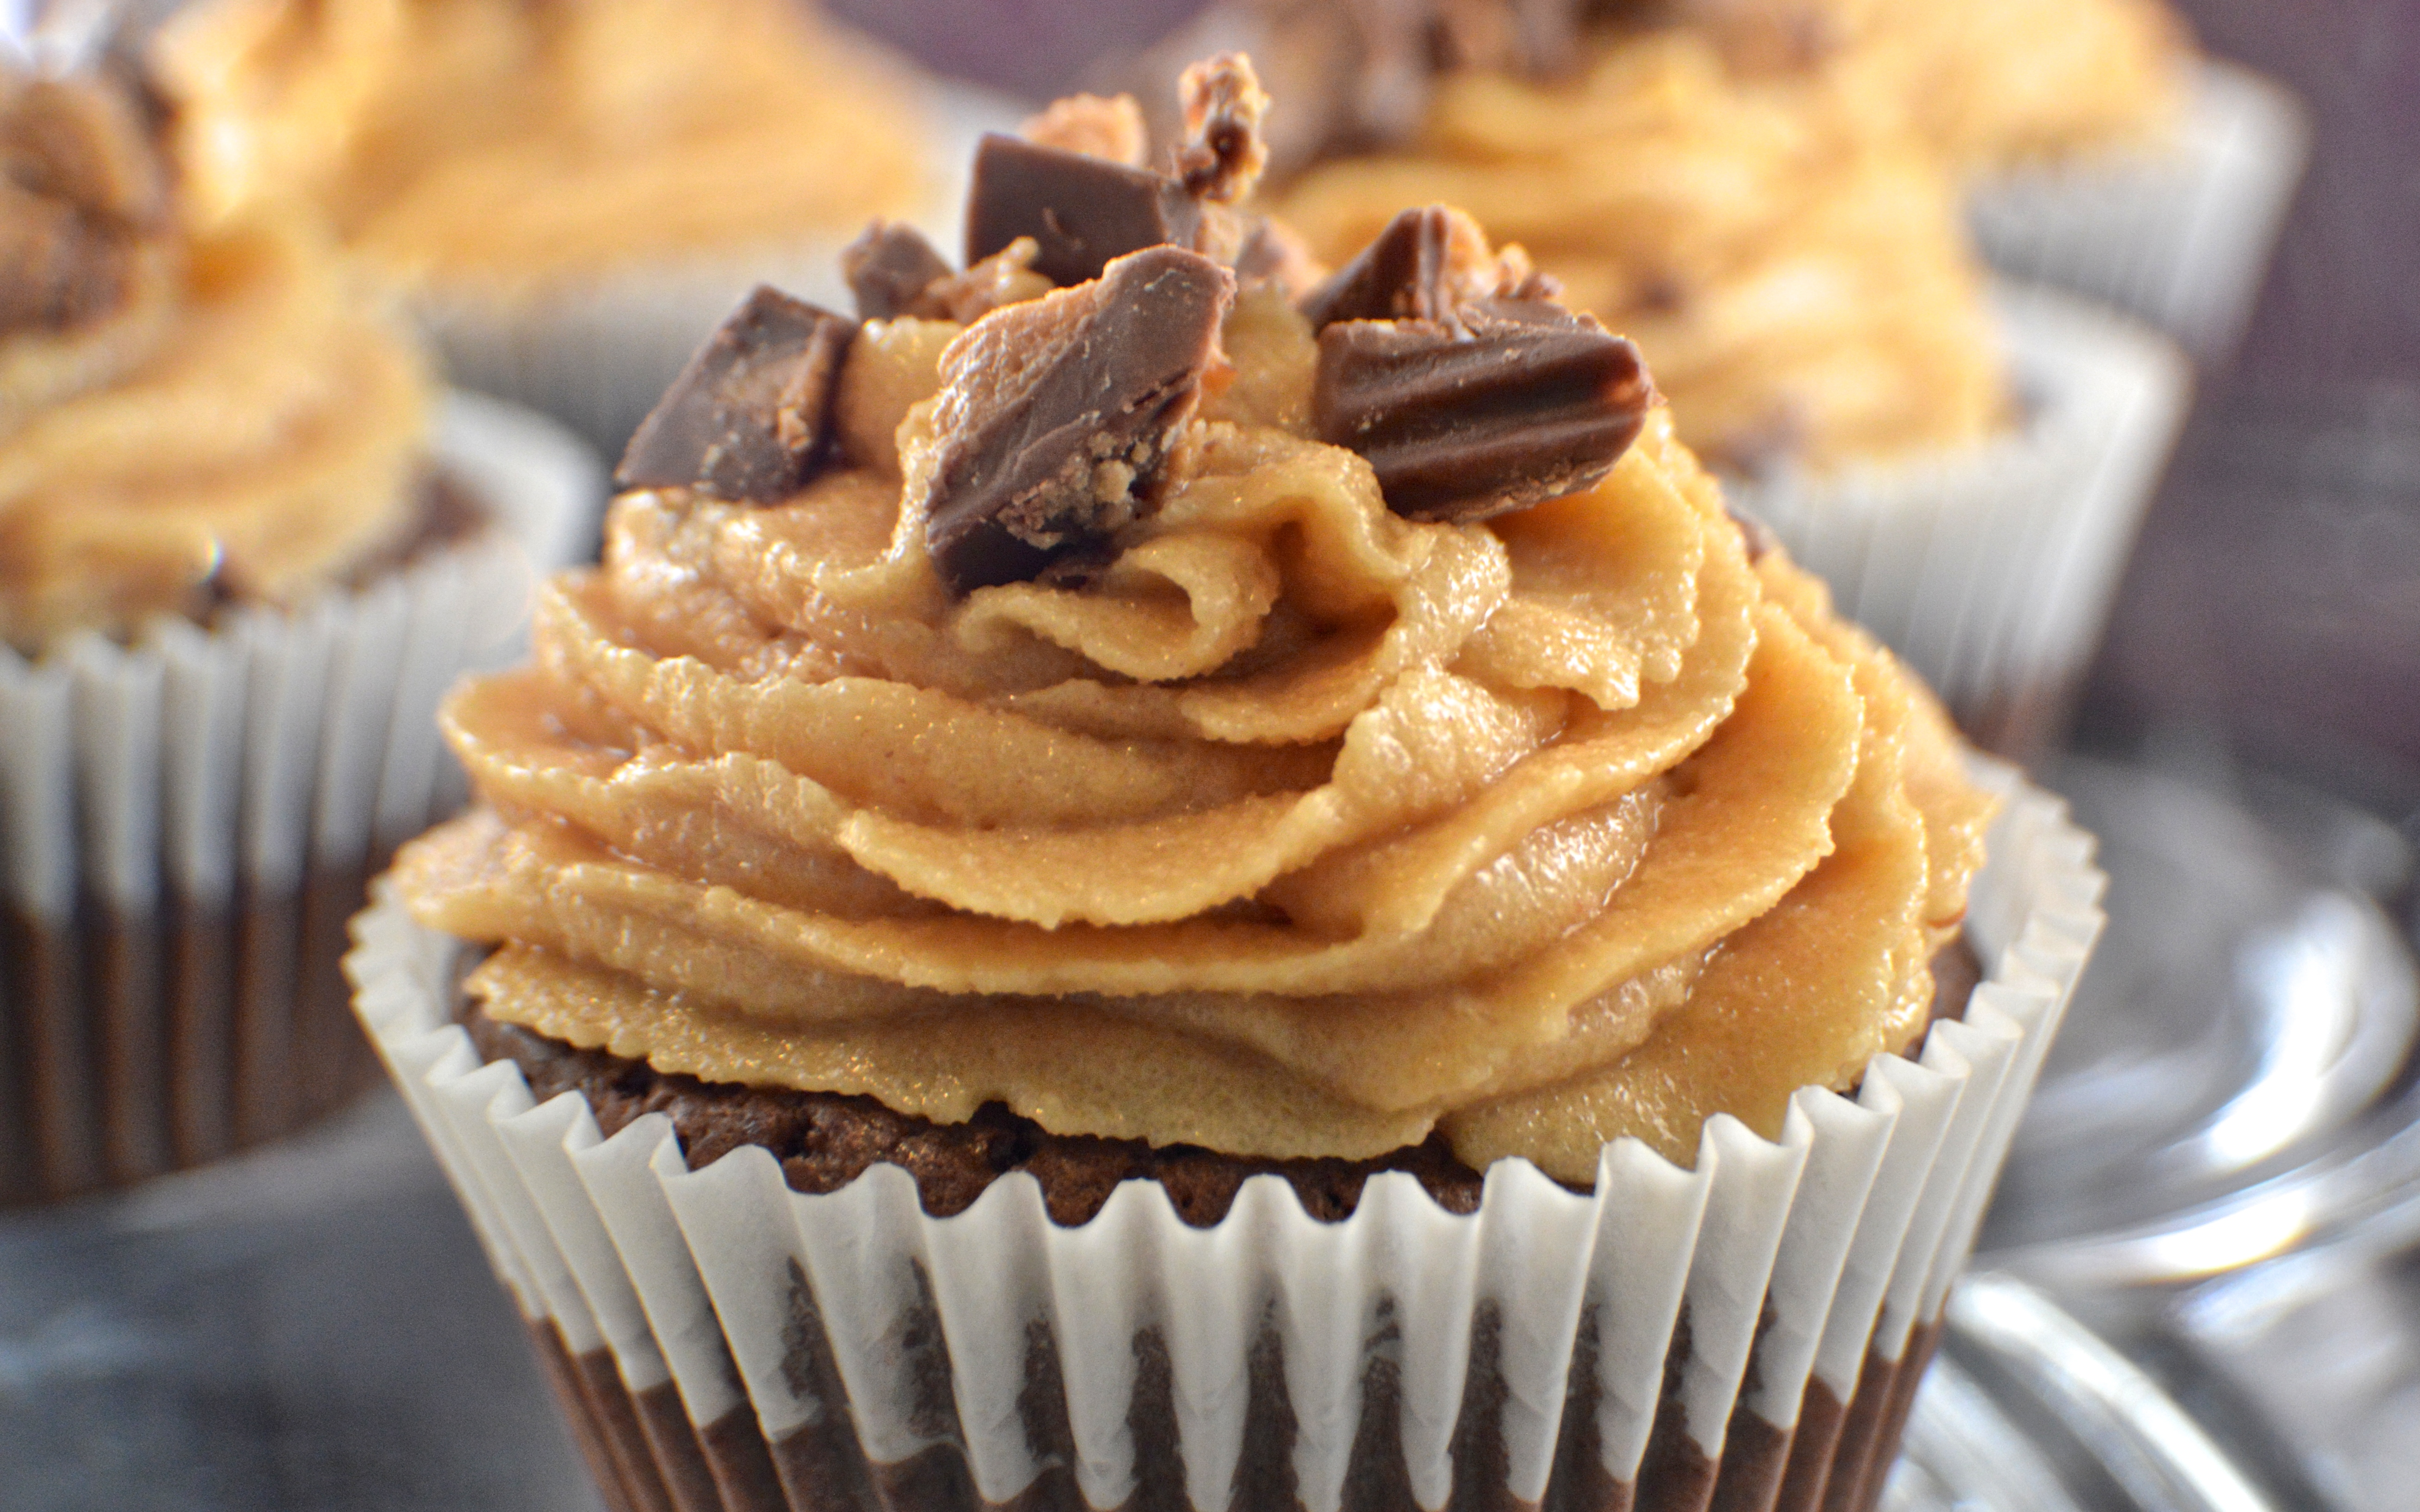 Reese's Brownie Cupcakes with Peanut Butter Frosting - Revamperate